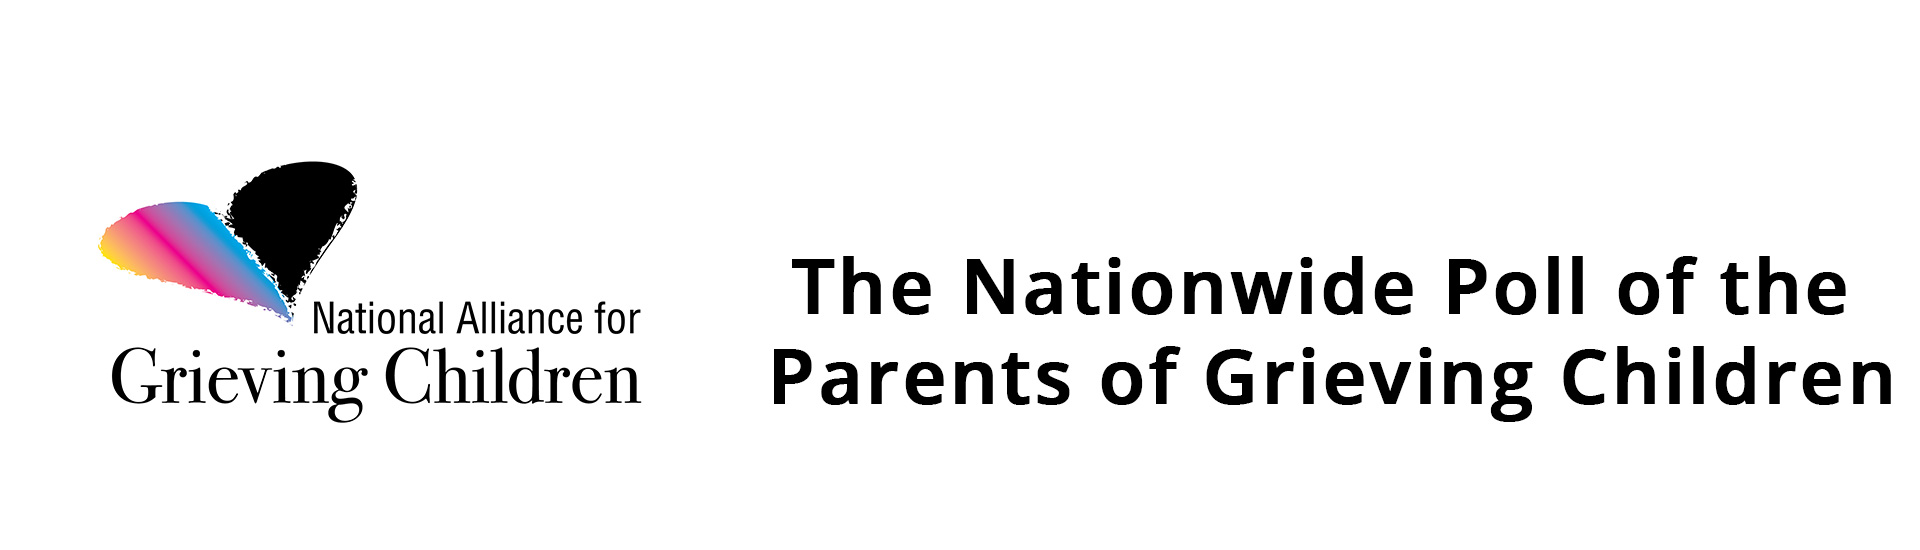 national poll of the parents of grieving children